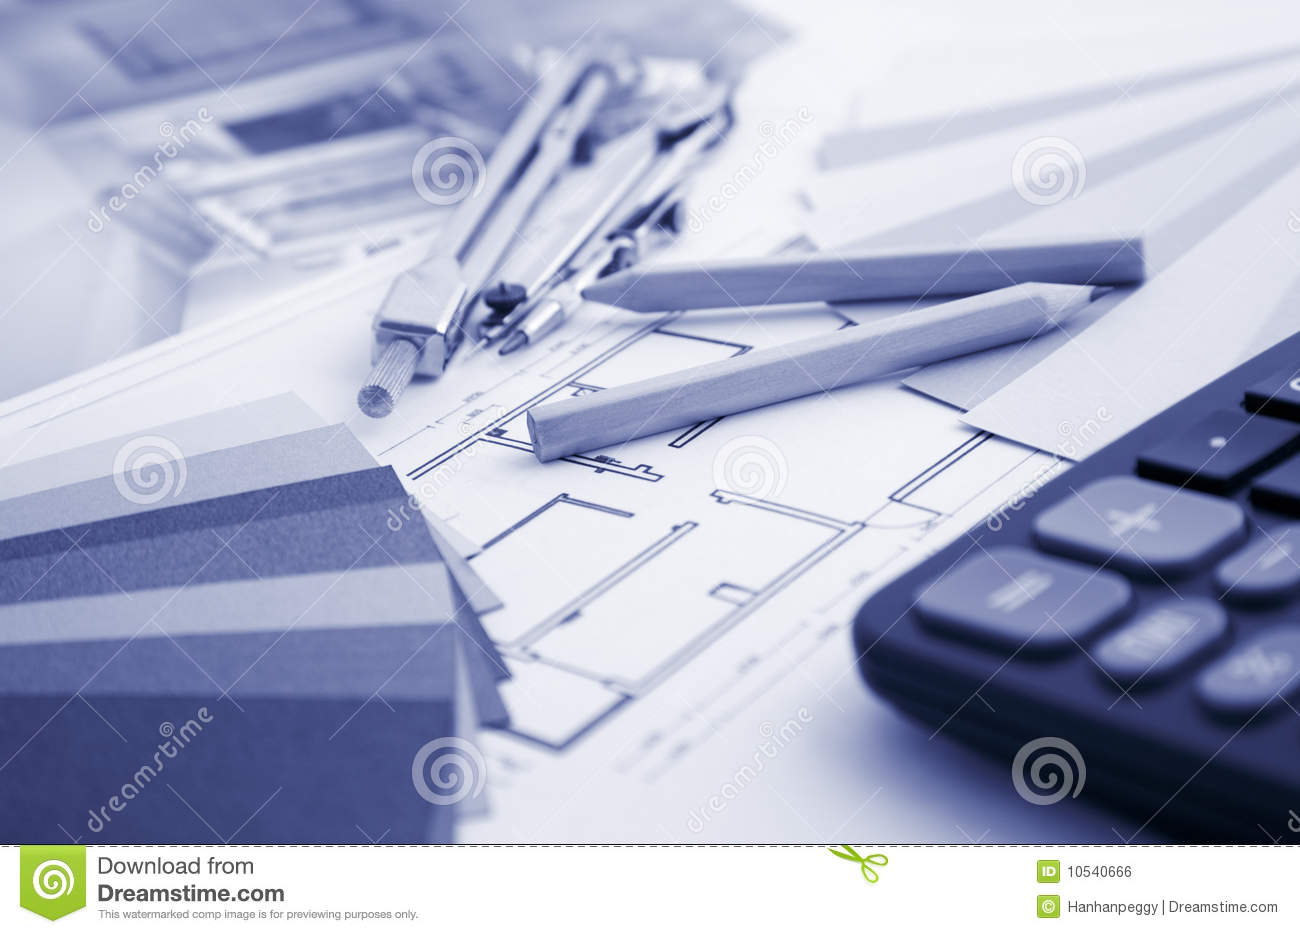 Residential Interior Design And Tools Stock Photo   Image of     Residential Interior Design and tools